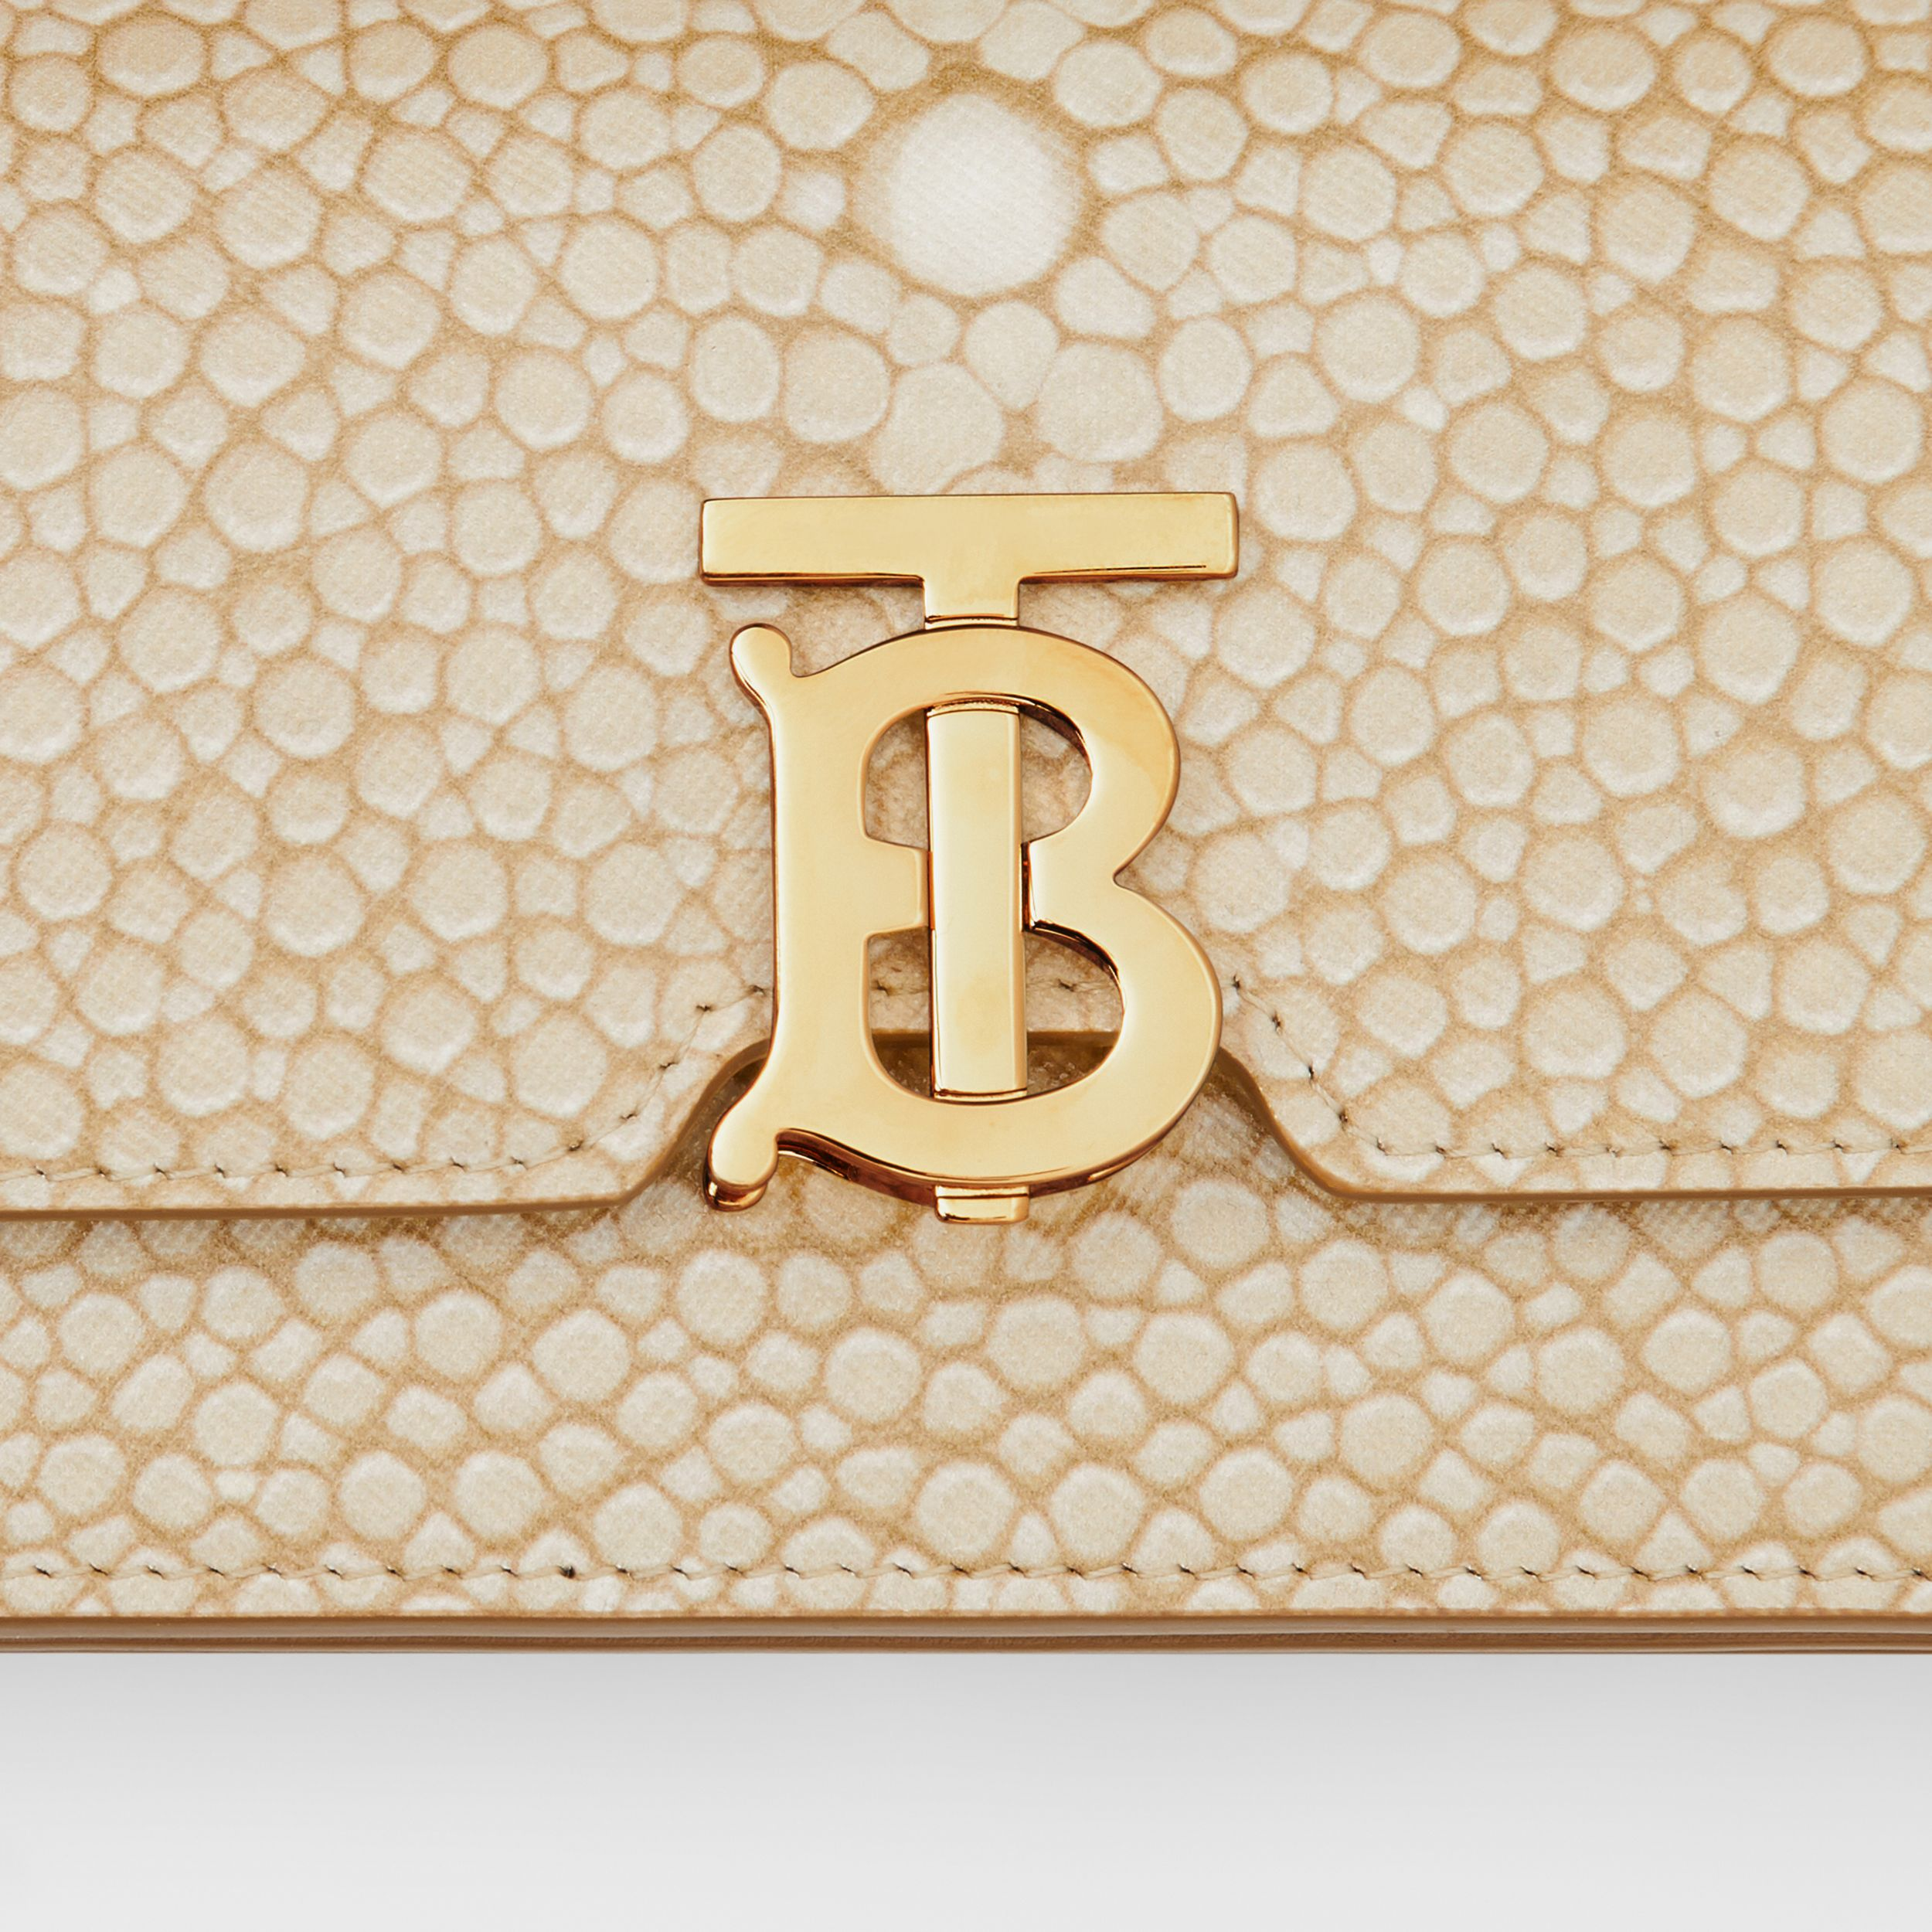 Mini Fish-scale Print Leather Shoulder Bag in Light Sand - Women | Burberry - 2